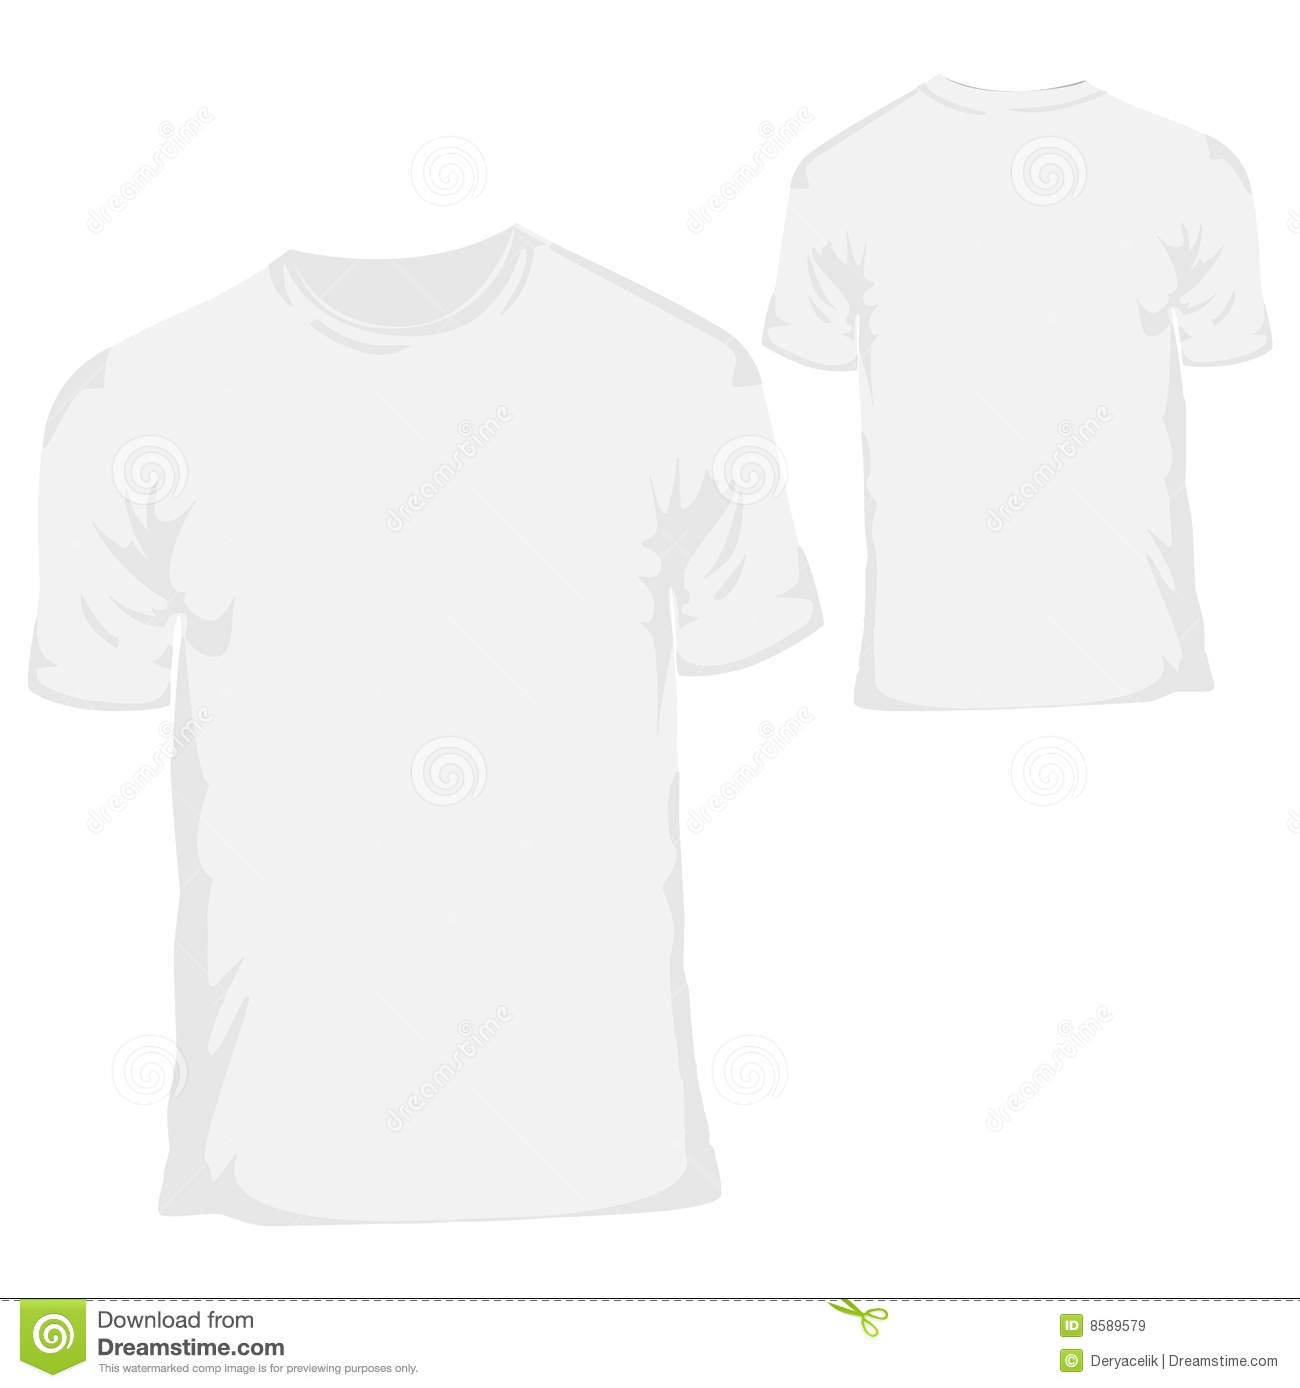 White blank t shirt design template for menswear royalty for Blank t shirt design template